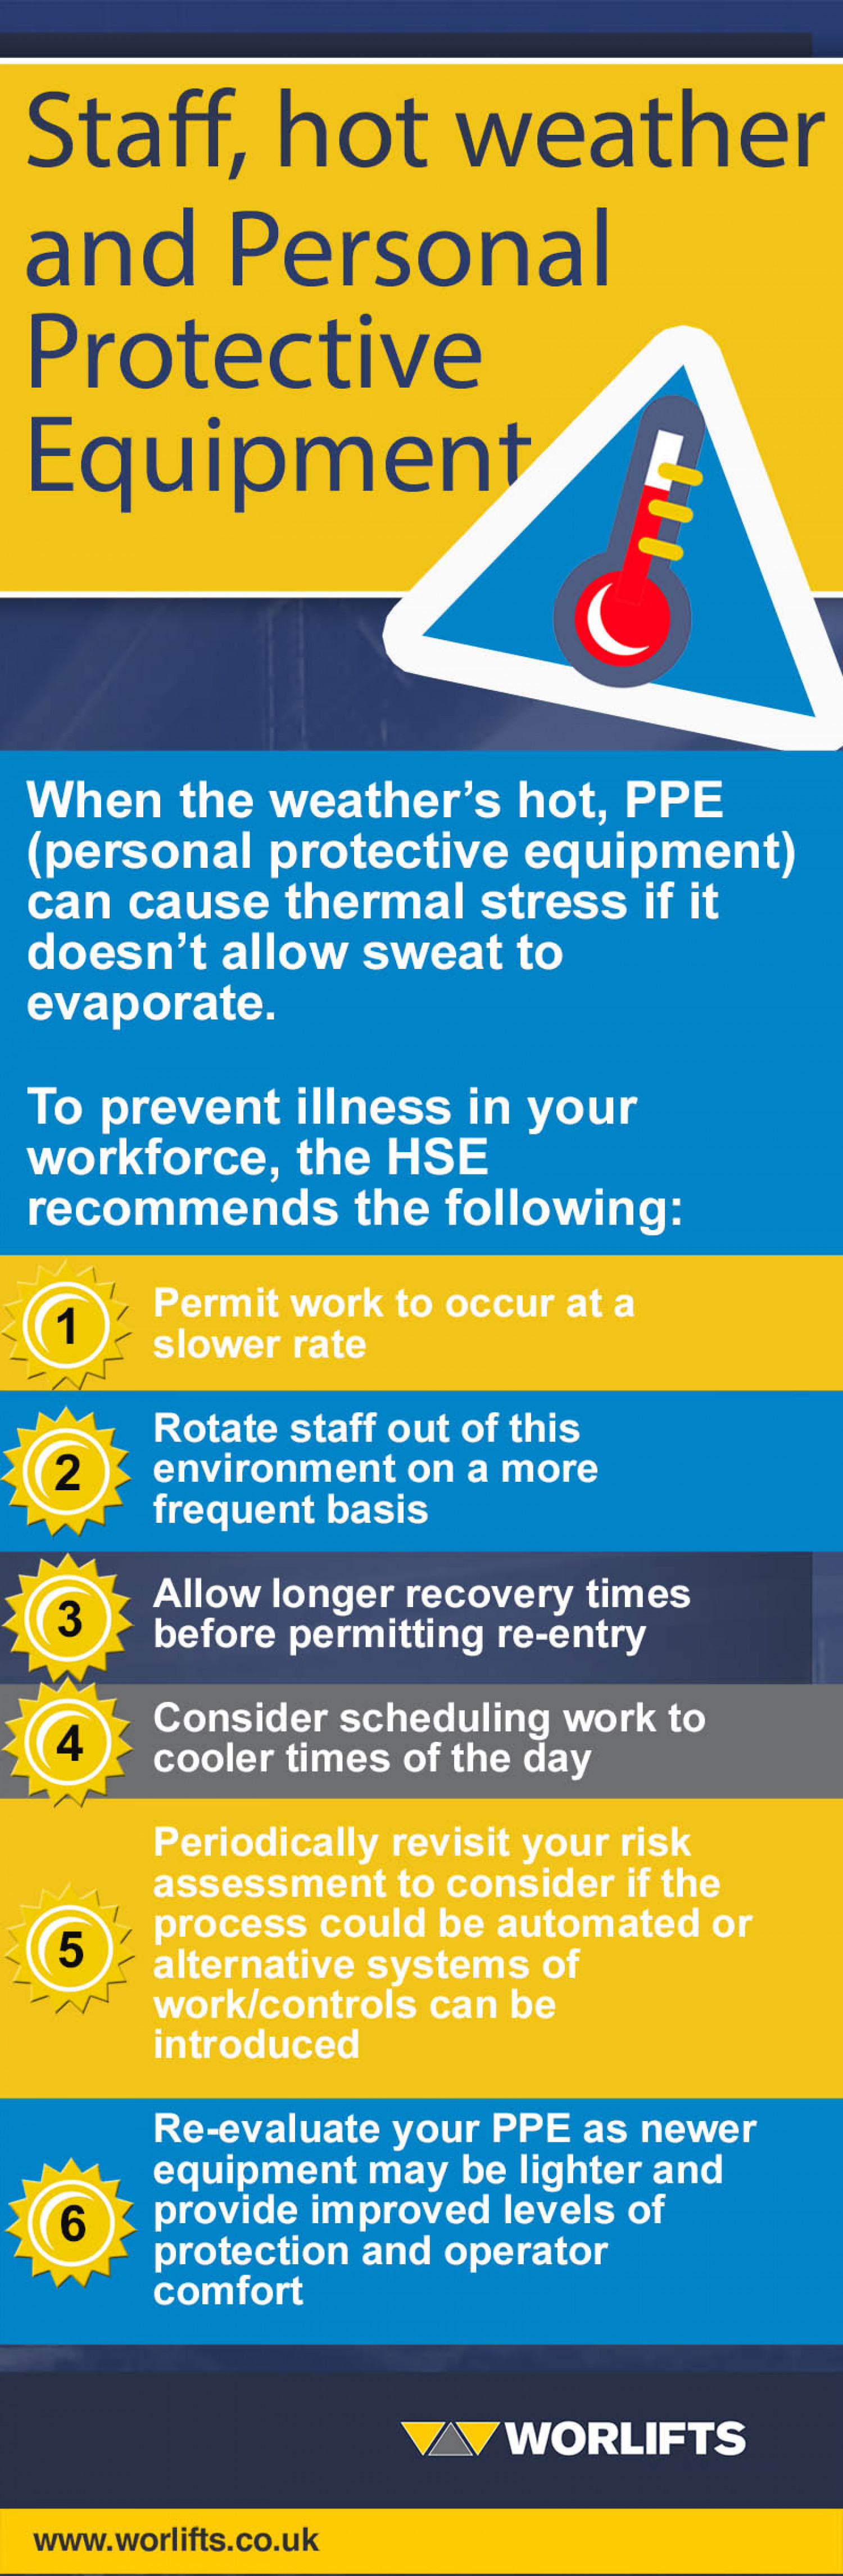 Hot weather and protective clothing - a guide Infographic